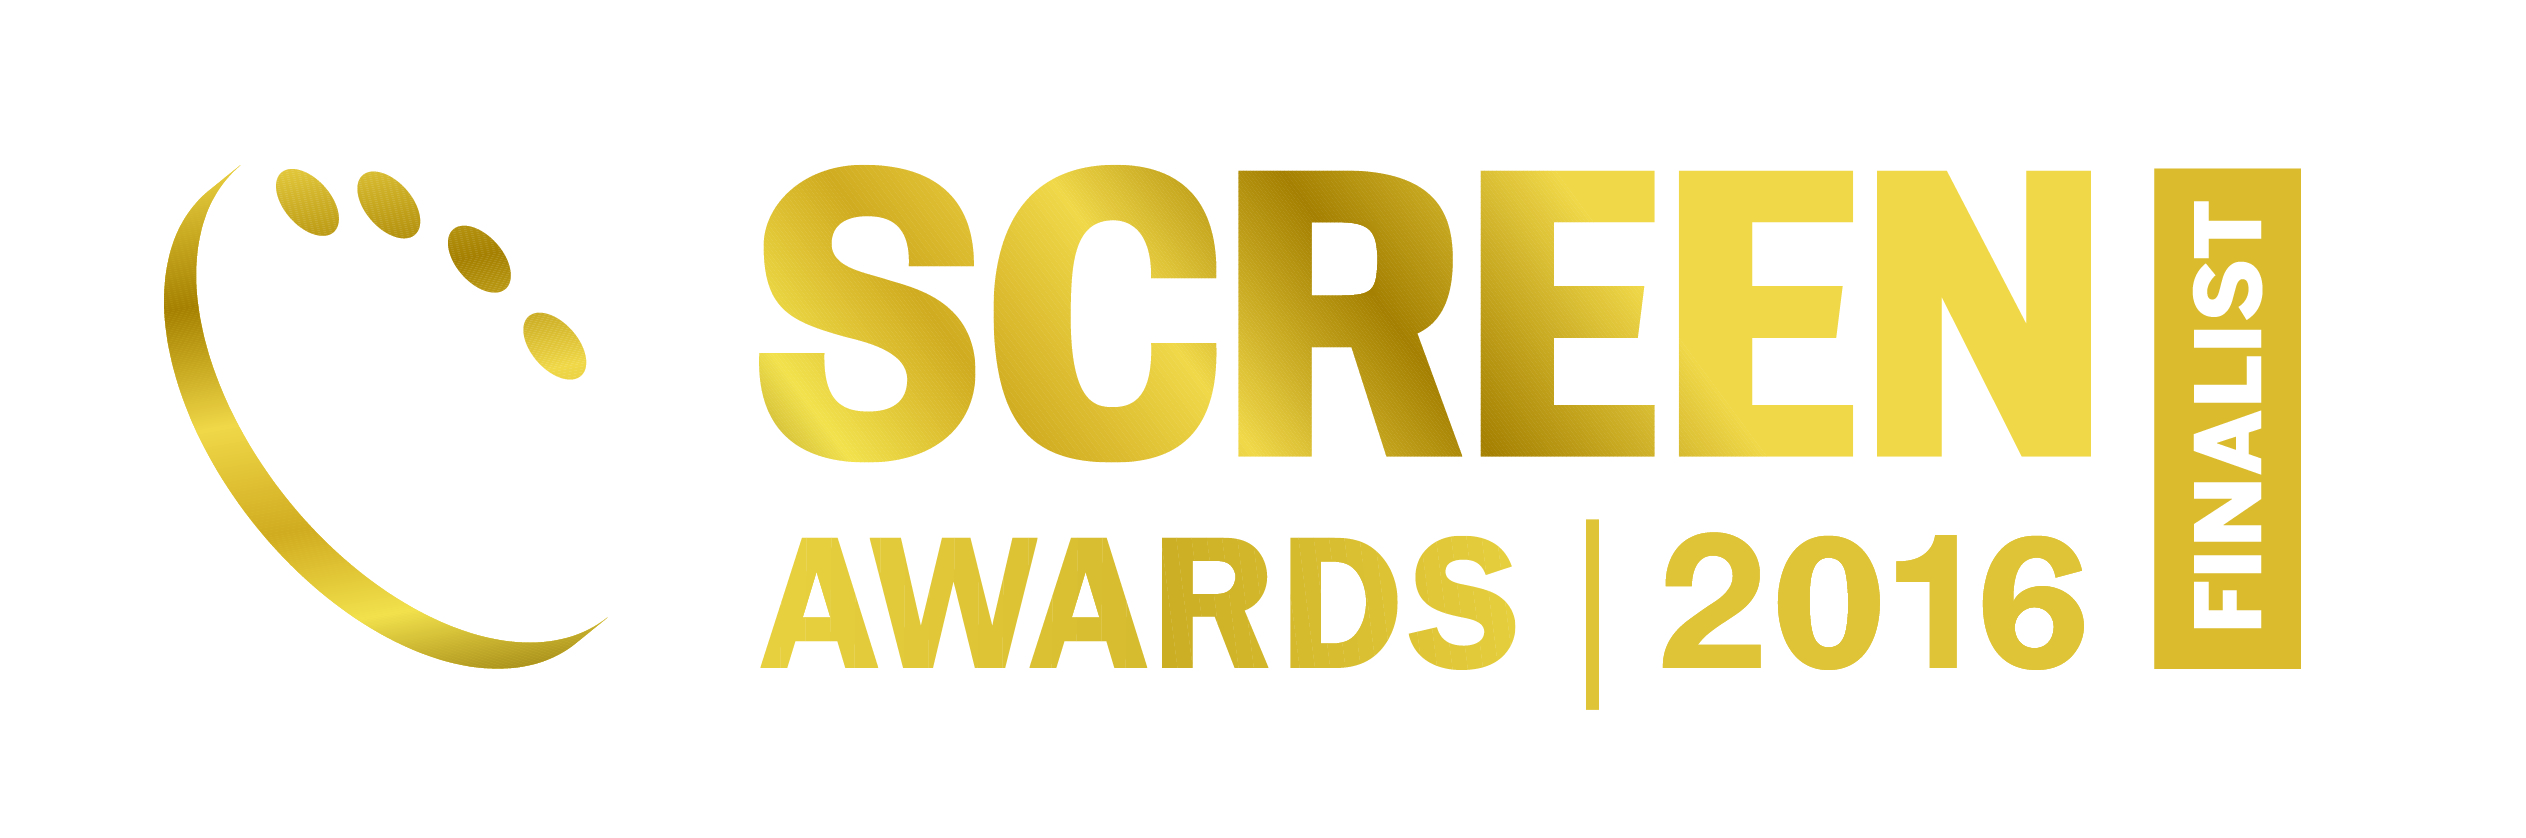 screen awards finalist logo